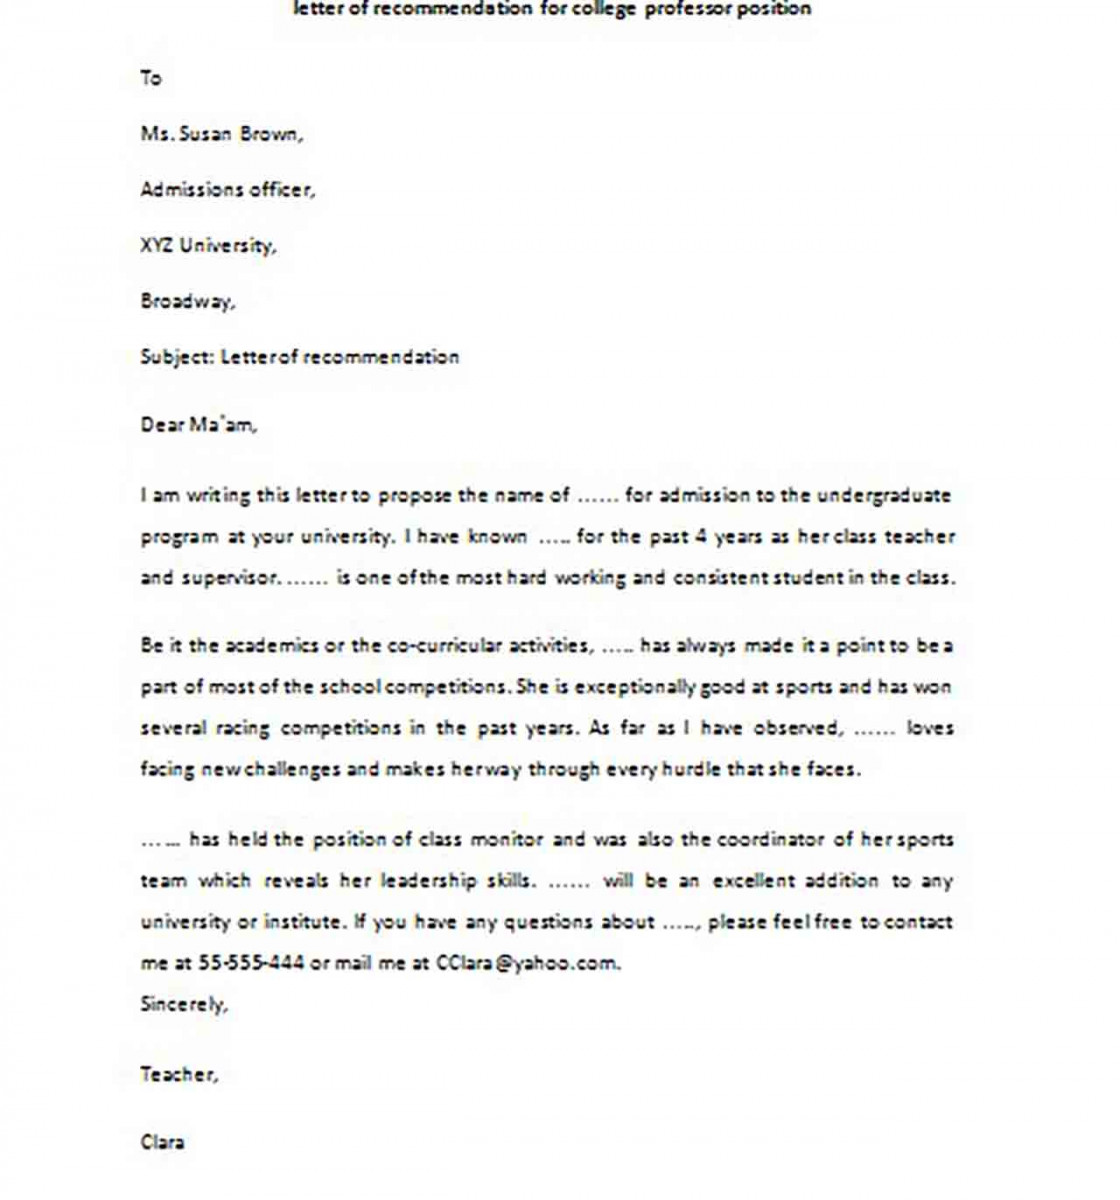 Sample Letter of Recommendation for College Professor Position